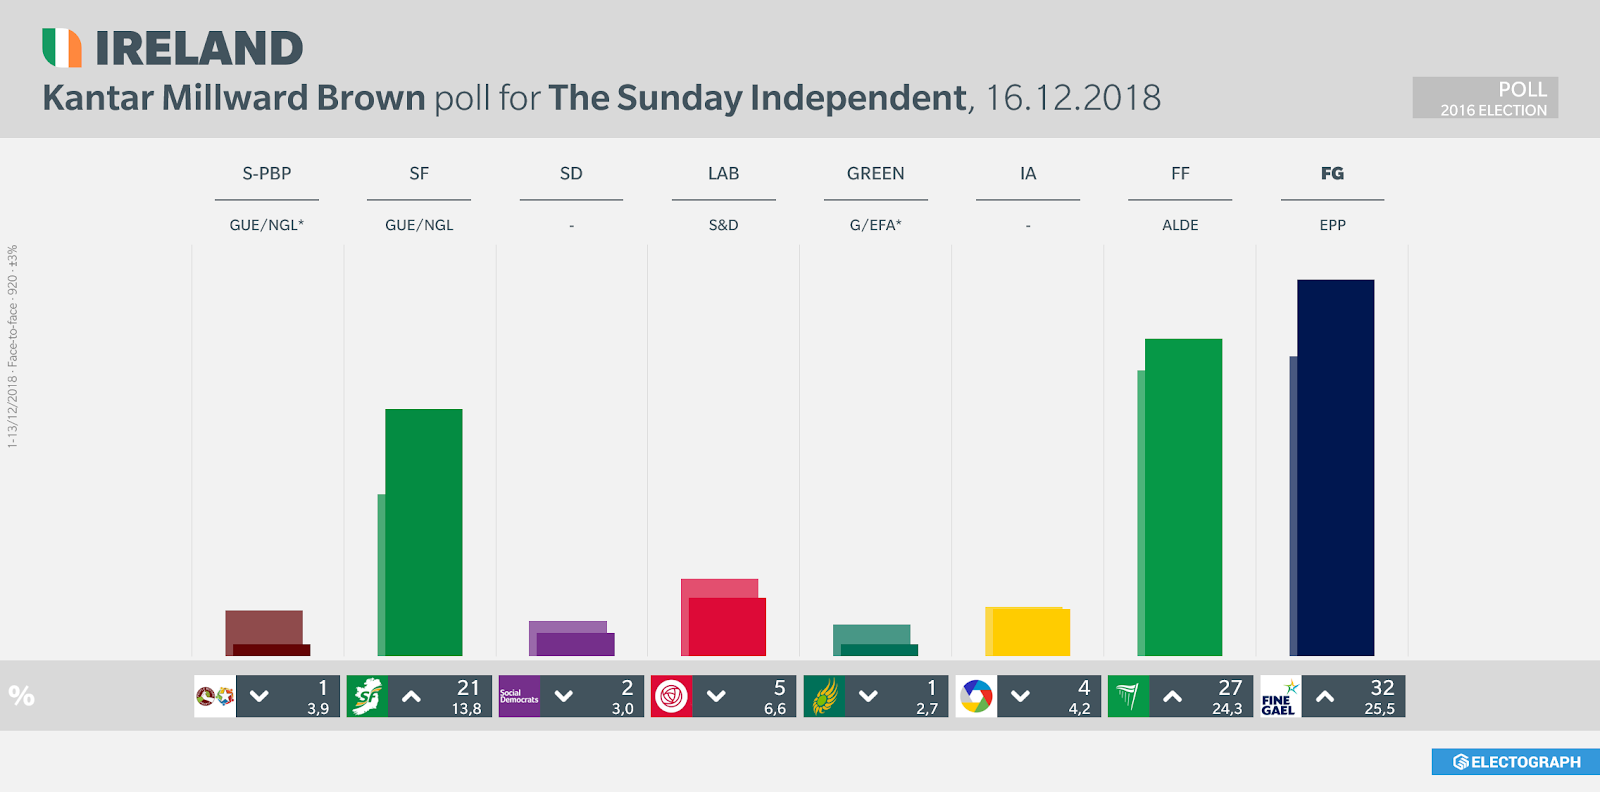 IRELAND: Kantar Millward Brown poll chart for The Sunday Independent, 16 December 2018